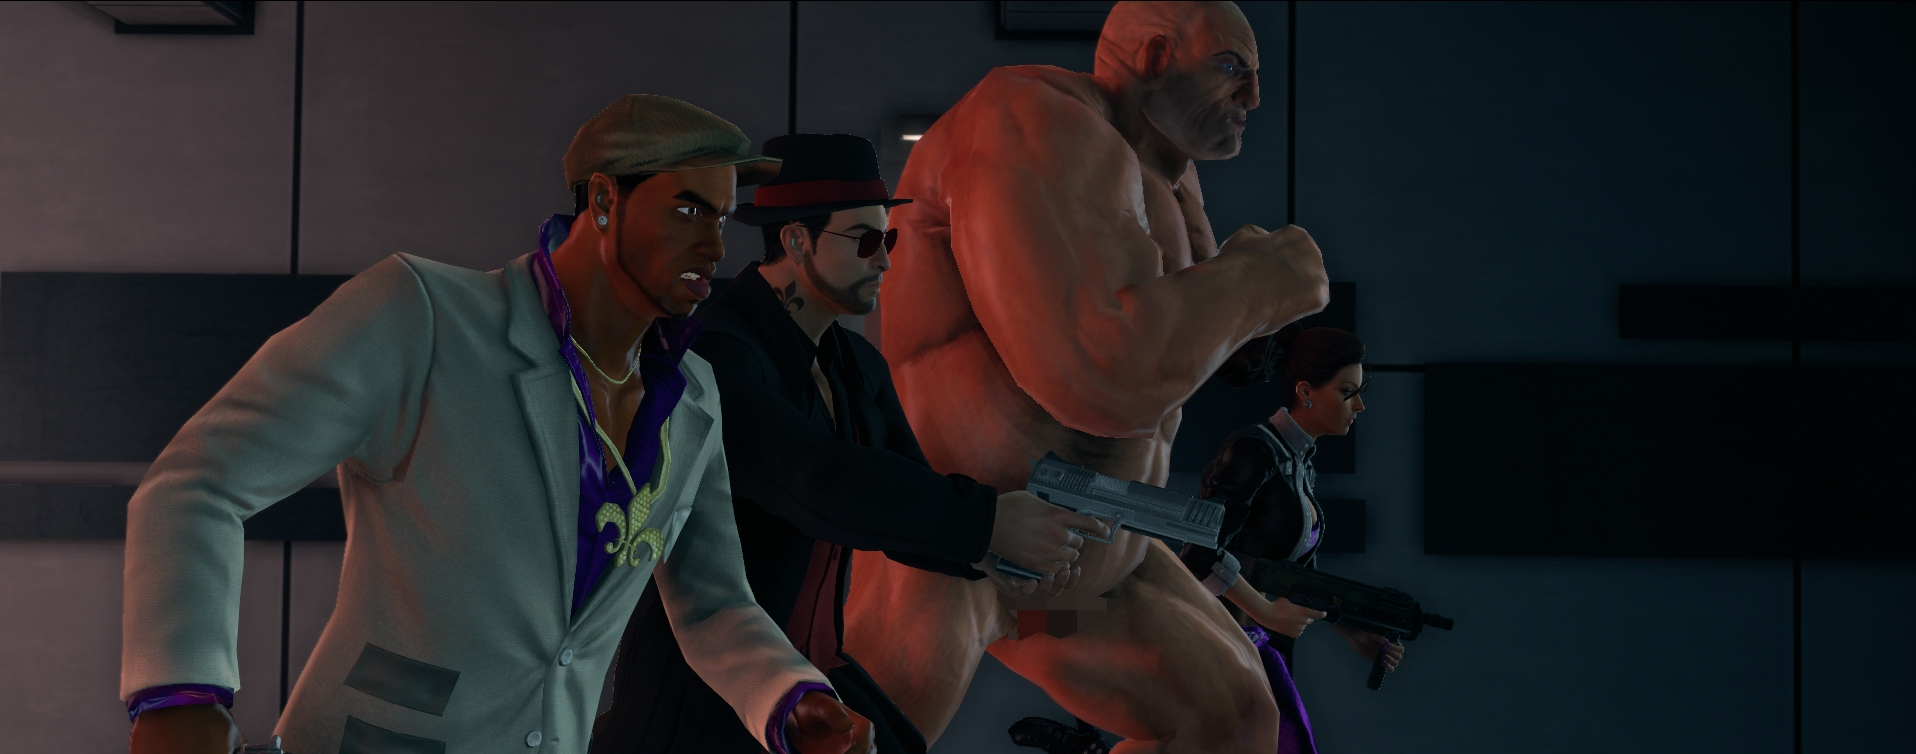 Saints row 2 uncensored porn image